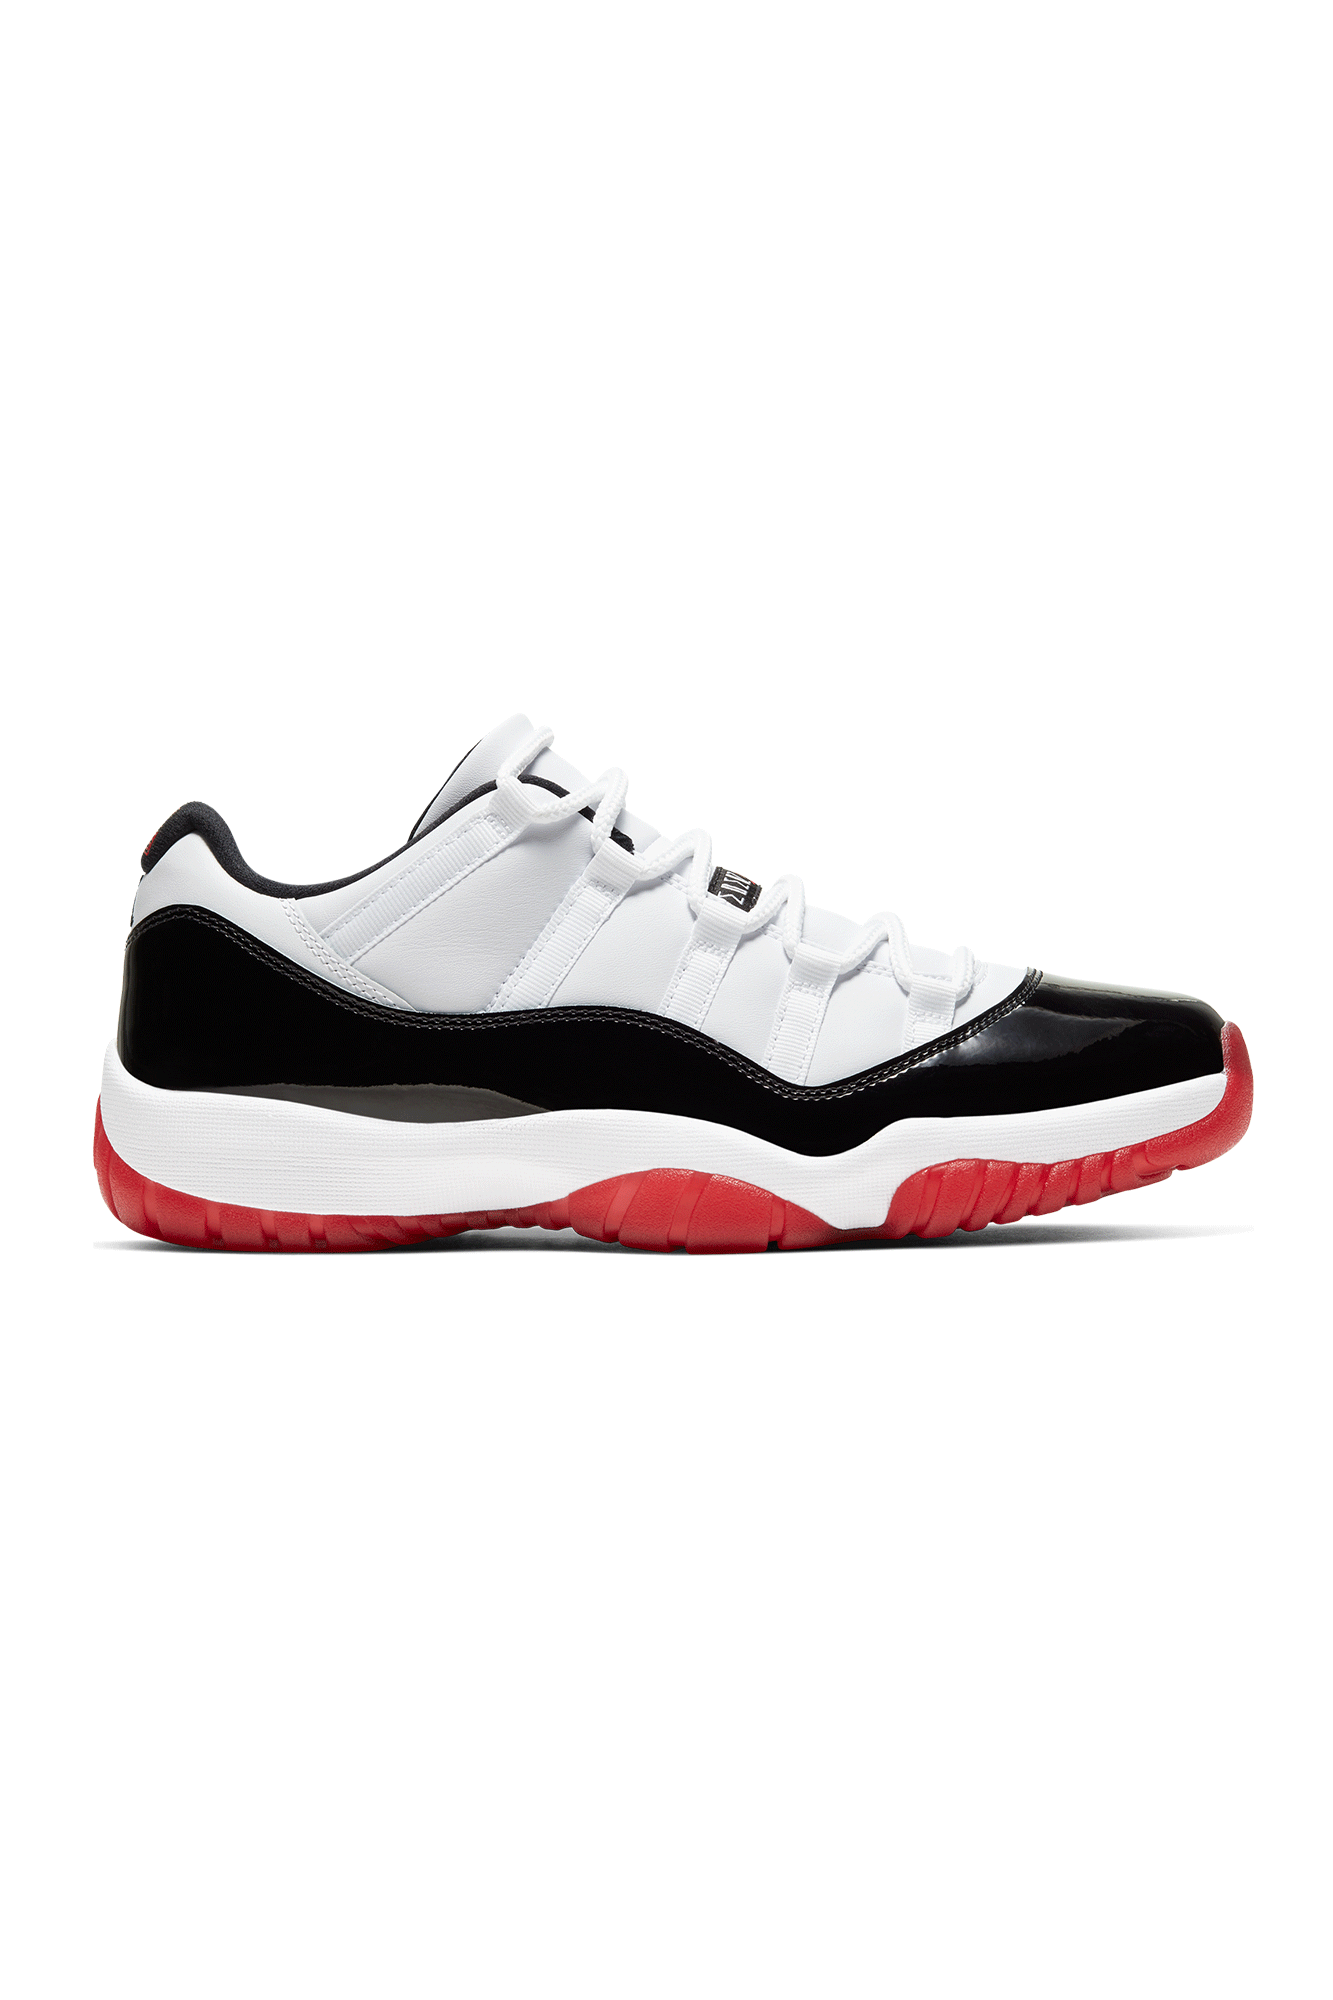 "11 Retro Low ""Concord Bred"" White"